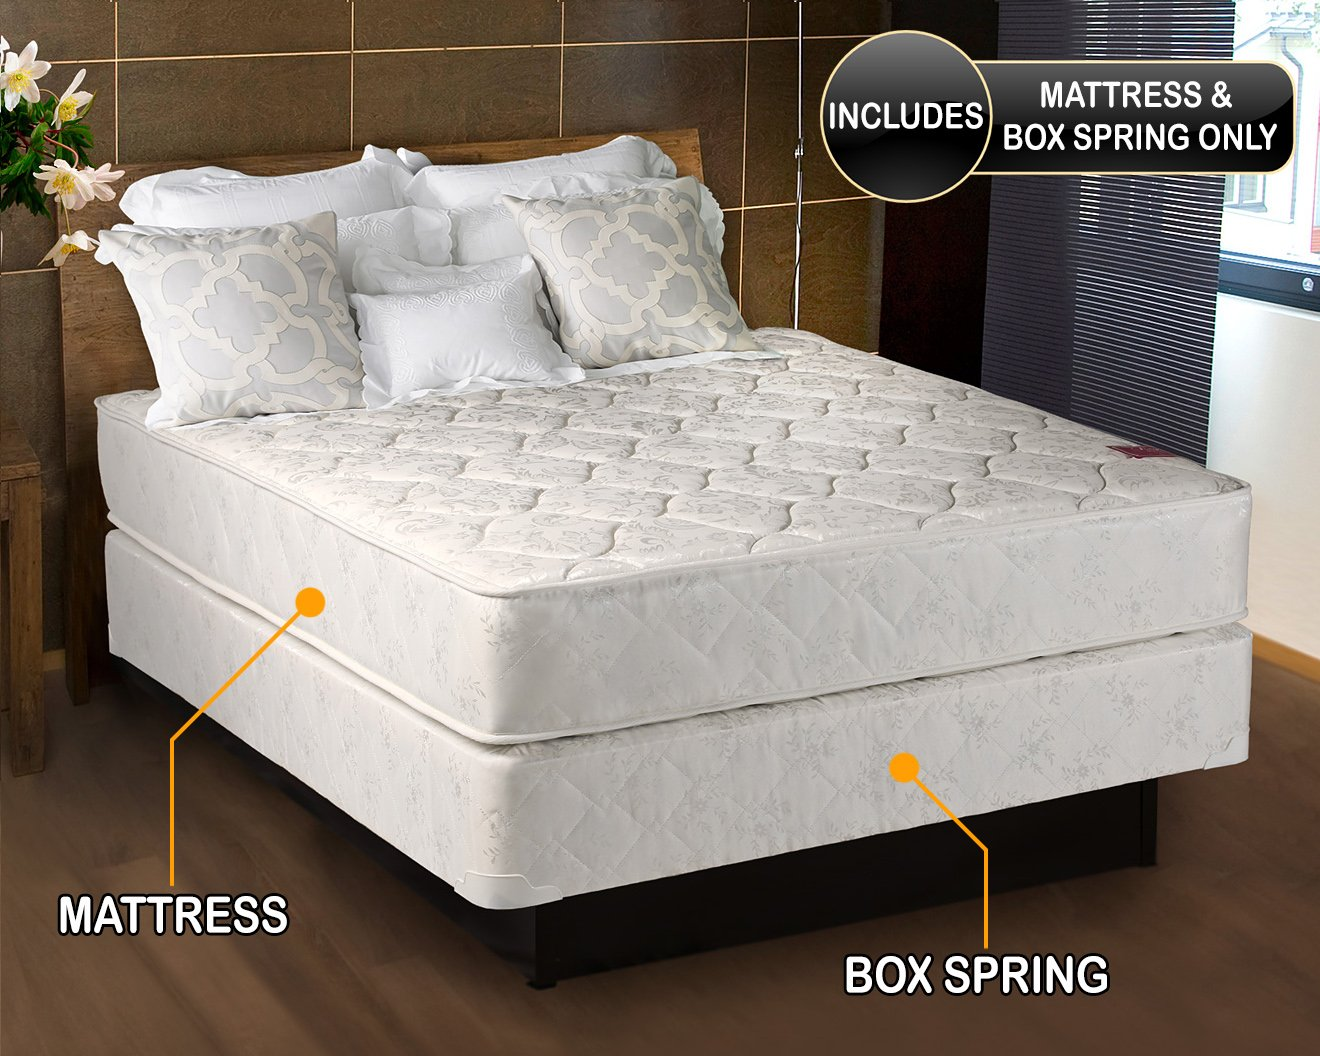 amazon com legacy medium firm full size 54 x75 x7 mattress and